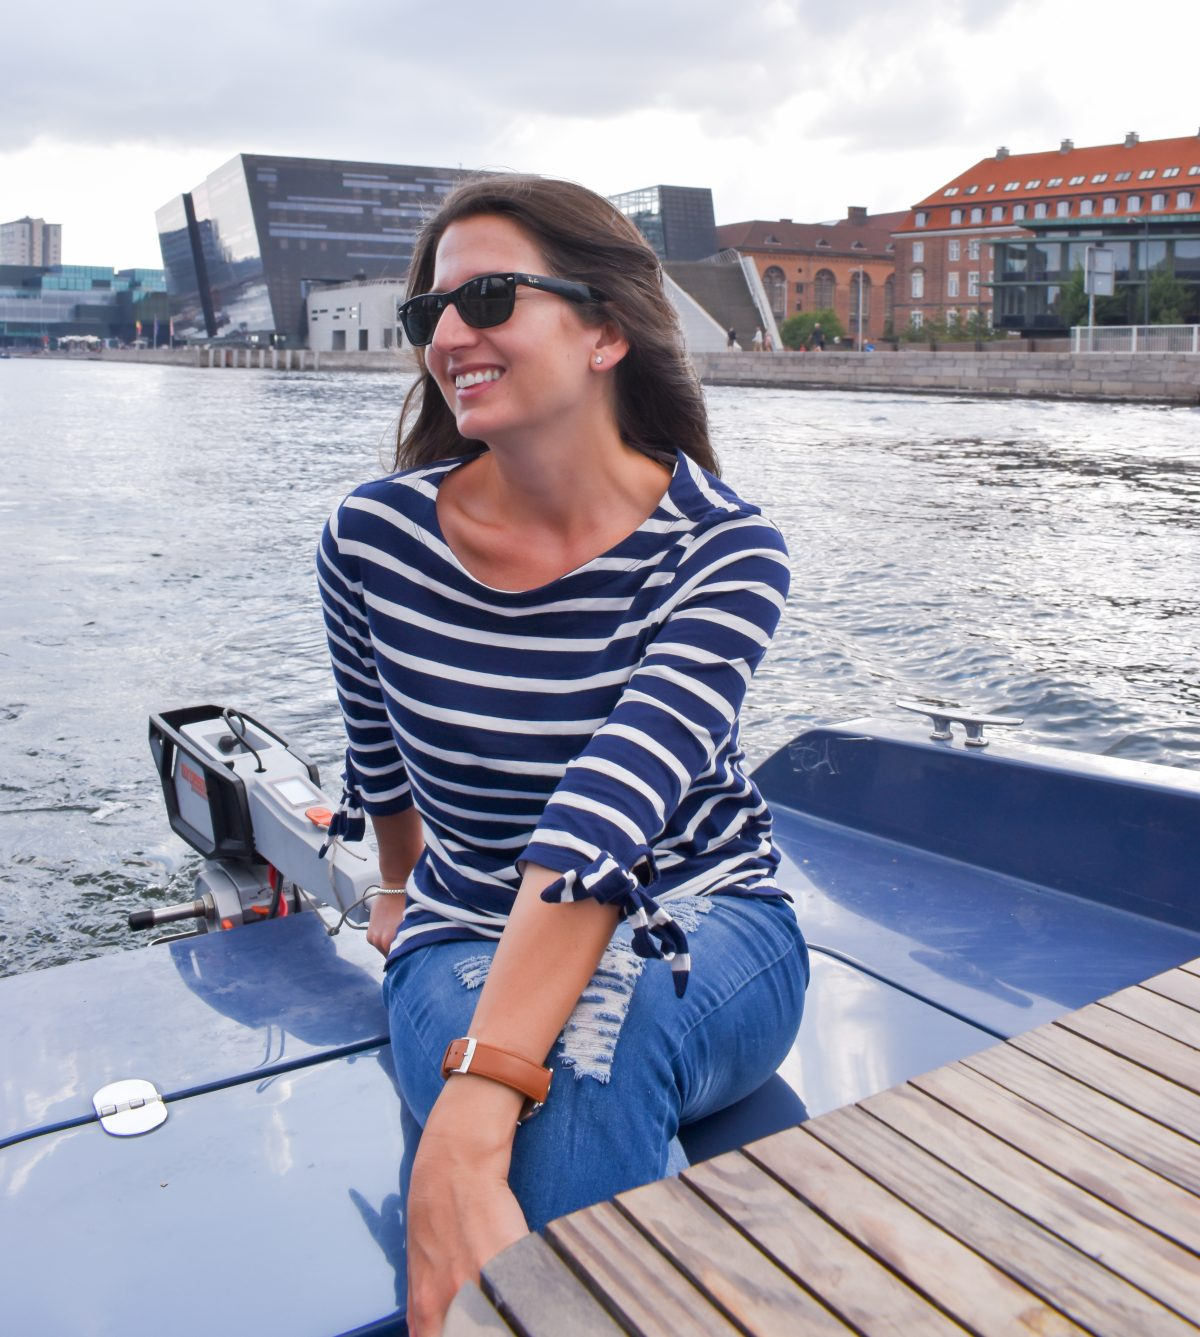 Erin drives a Go Boat through a canal in Copenhagen Denmark